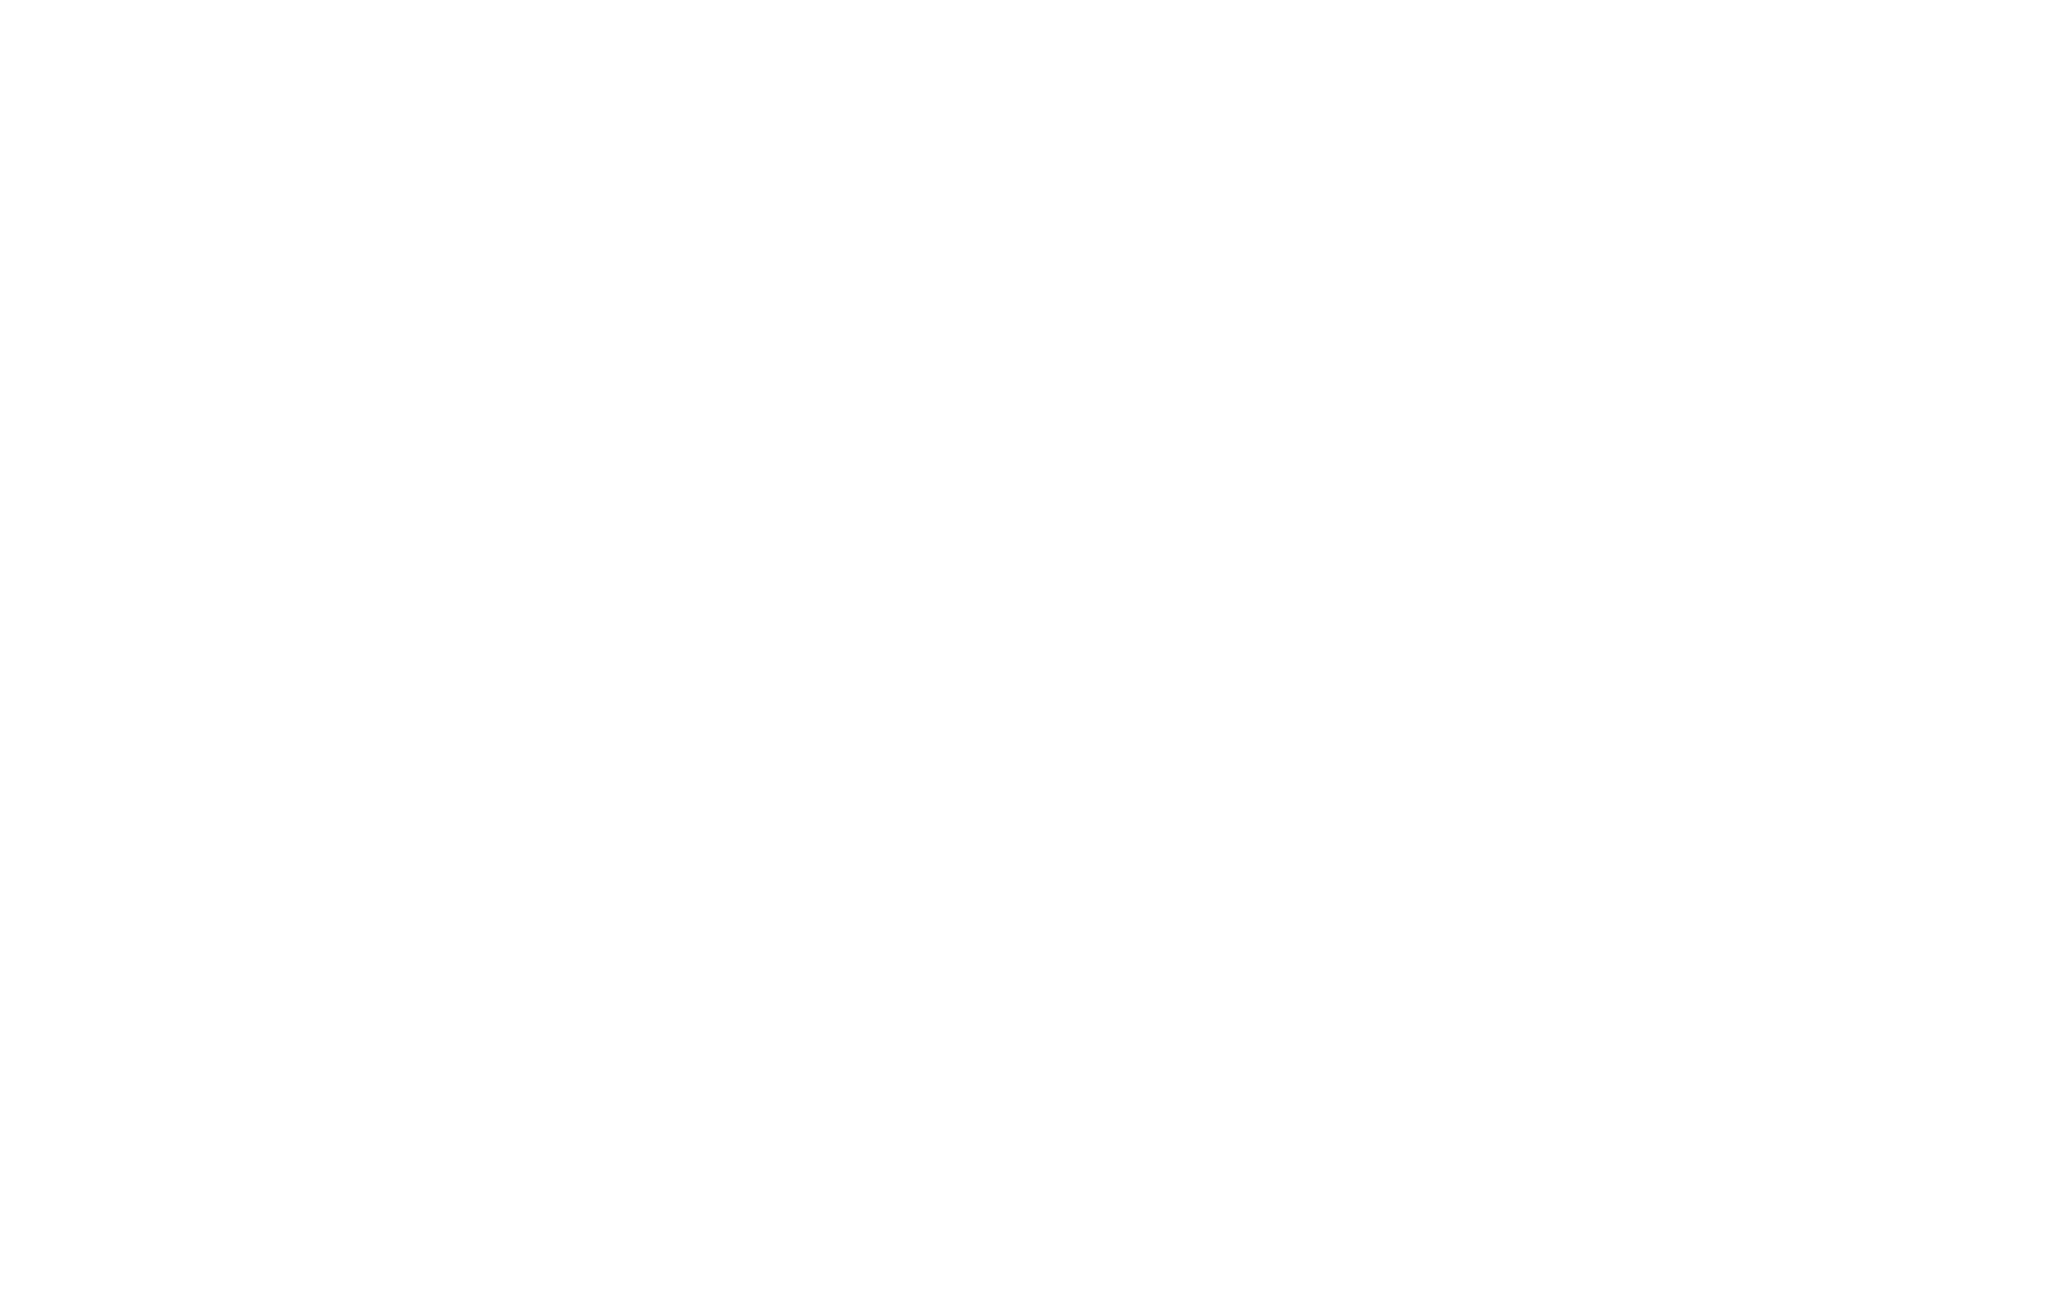 The Nuvo Group Stacked Logo